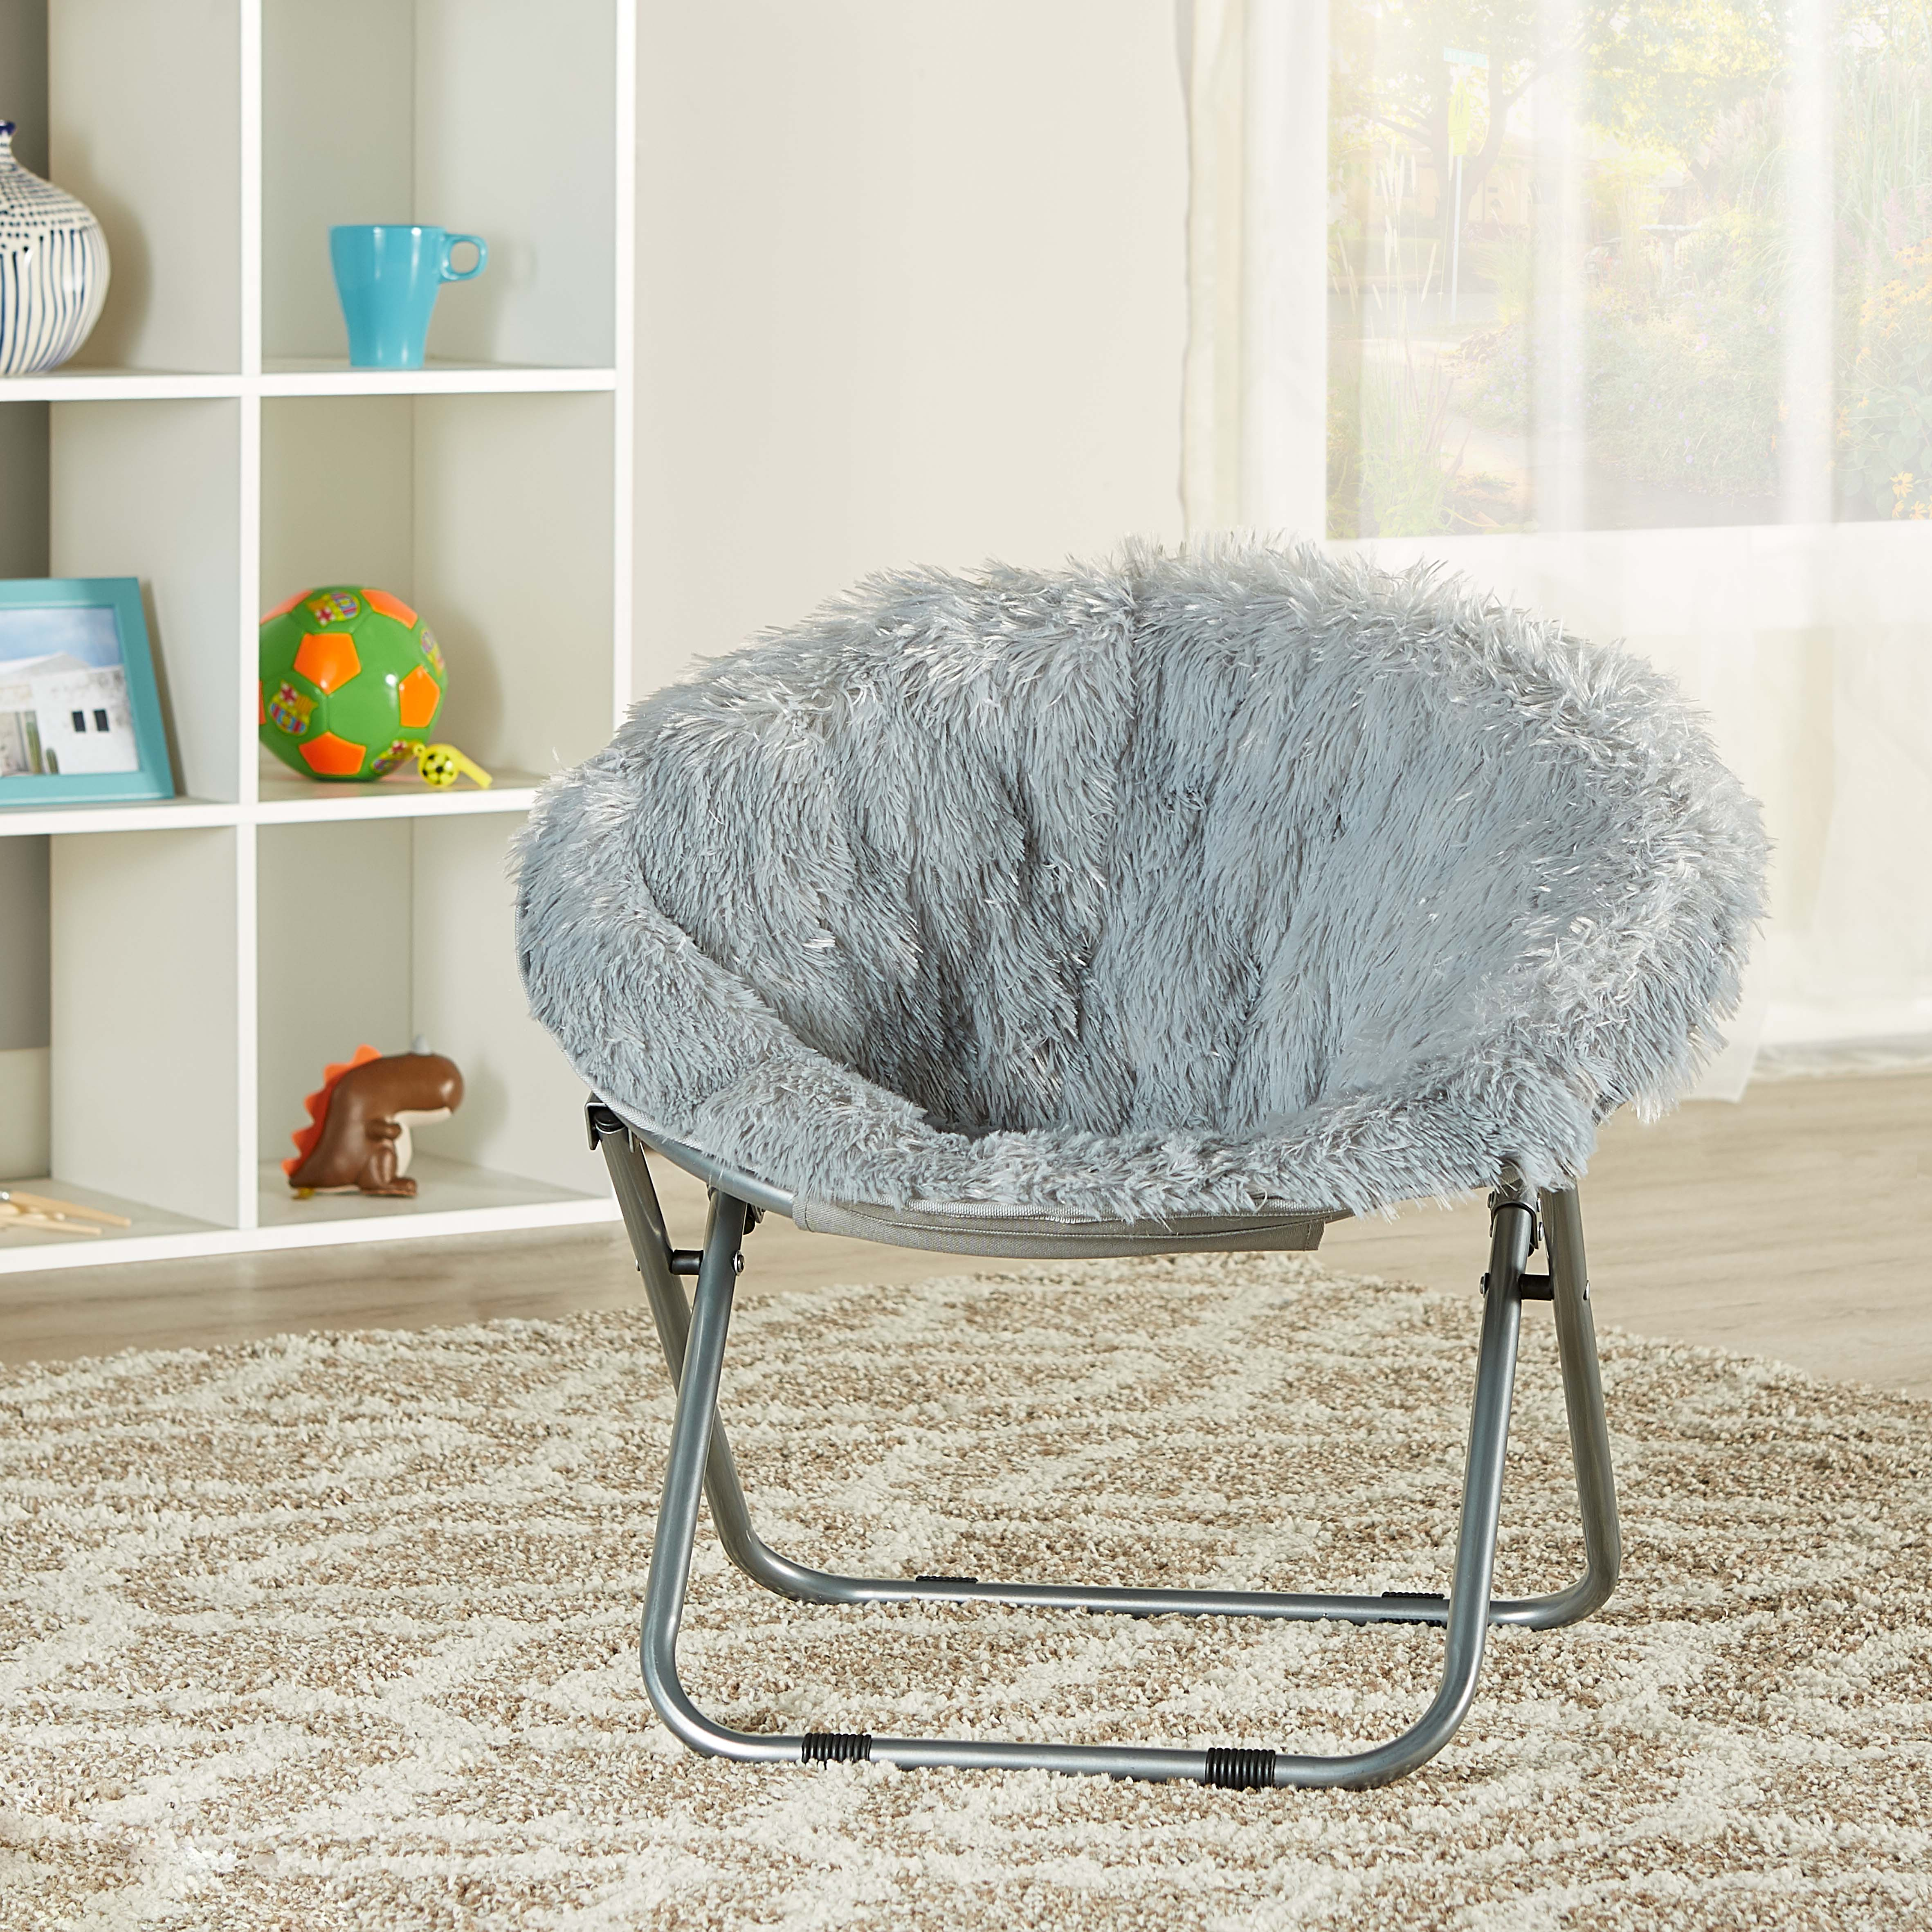 Mainstays Kids Blair Plush Faux-Fur Saucer Chair Multiple Colors - Walmart.com & Mainstays Kids Blair Plush Faux-Fur Saucer Chair Multiple Colors ...